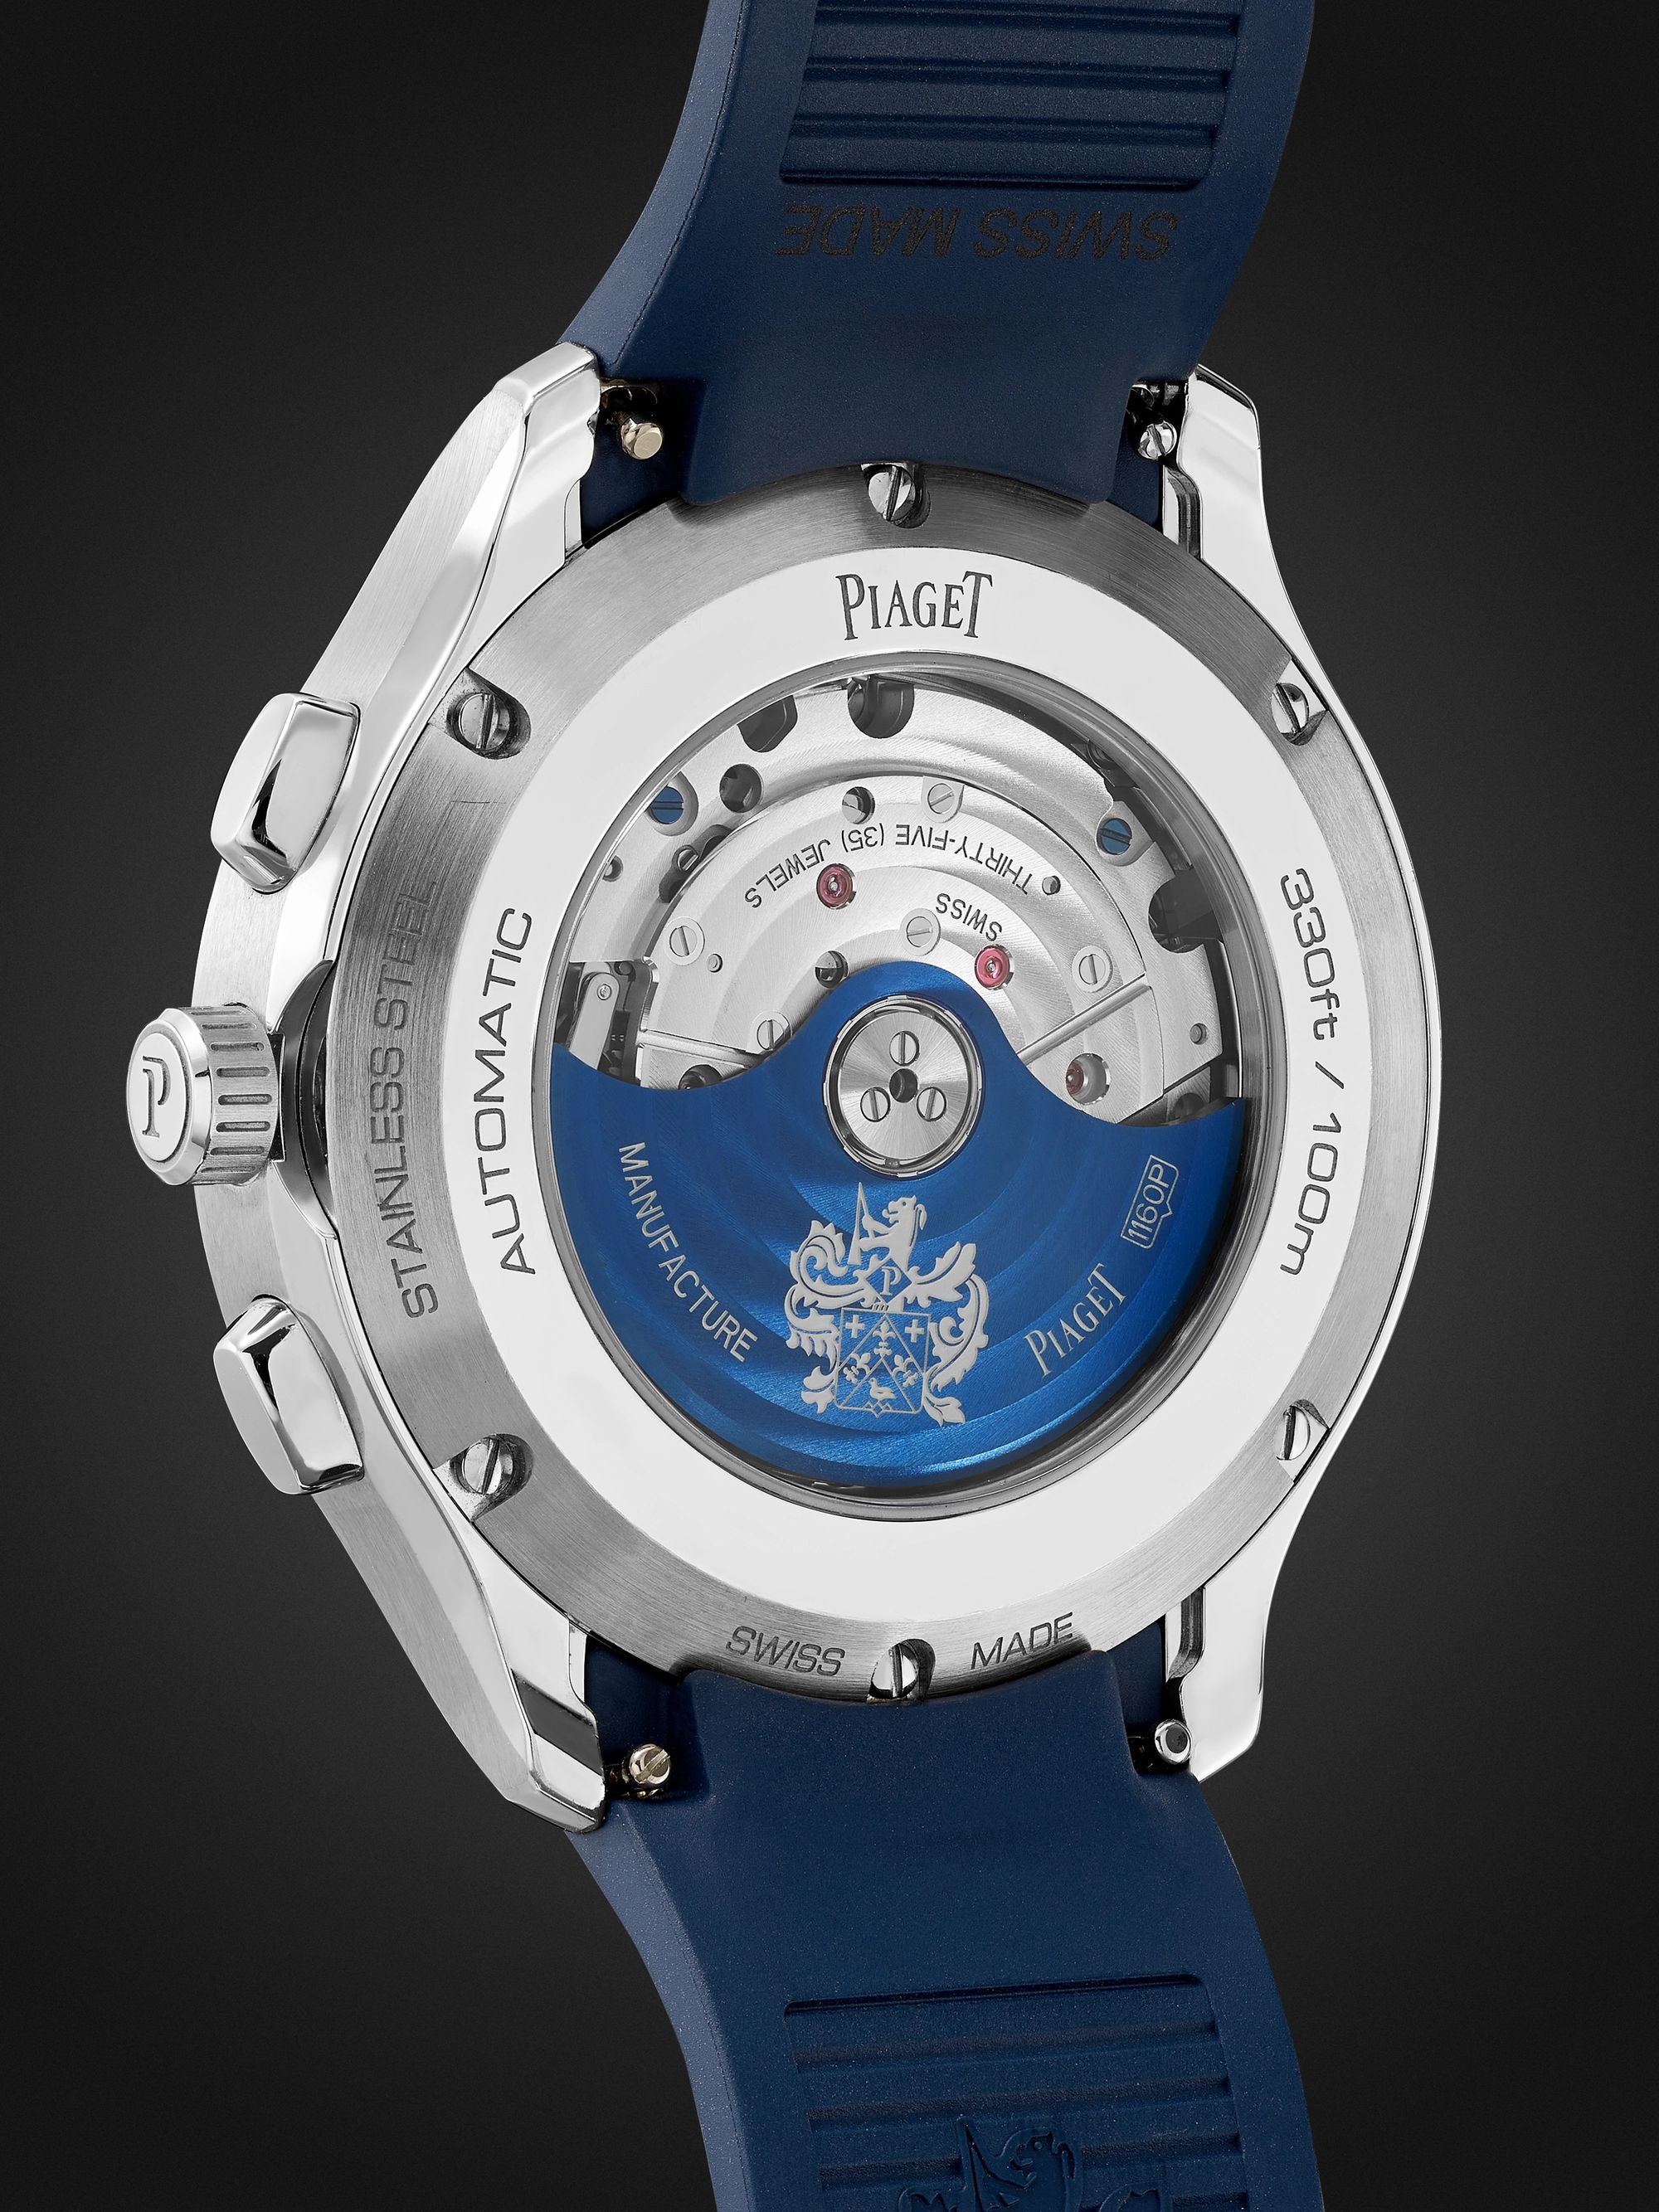 PIAGET Polo Automatic Chronograph 42mm Stainless Steel and Rubber Watch, Ref. No. G0A46013